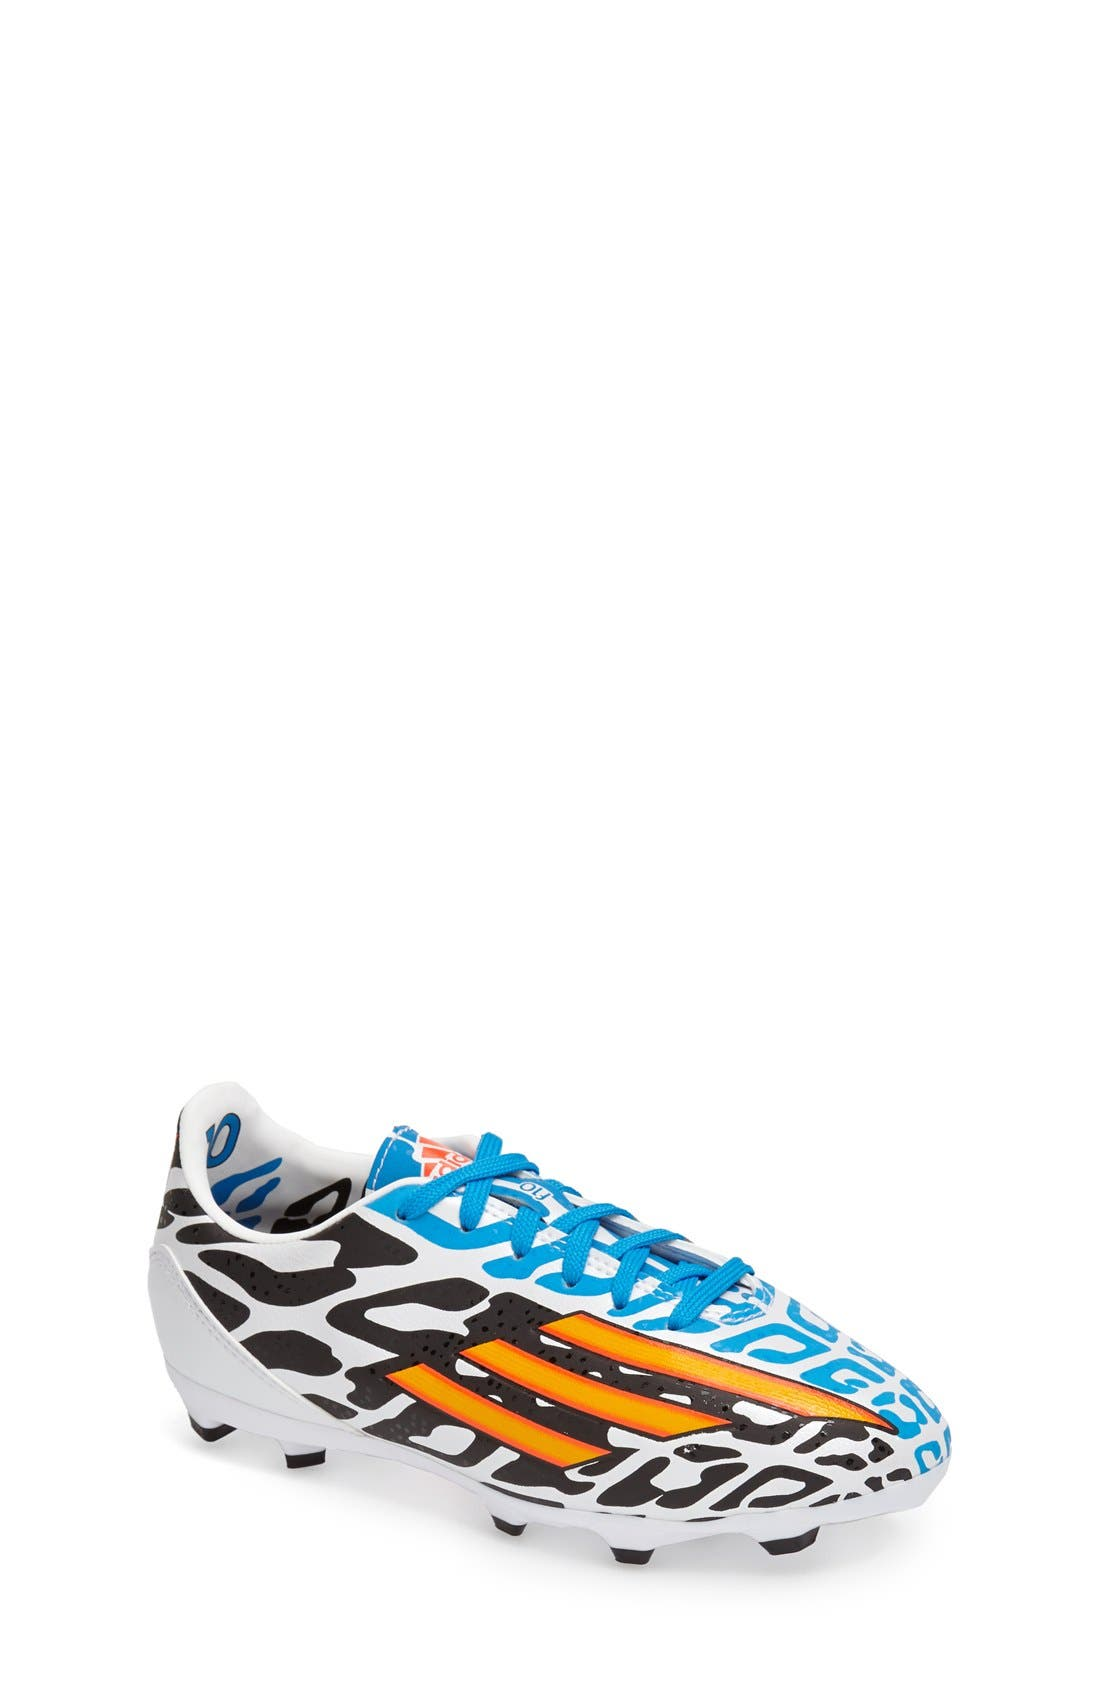 Alternate Image 1 Selected - adidas 'F10 FG Messi - 2014 FIFA World Cup Brasil™' Soccer Cleat (Toddler, Little Kid & Big Kid)